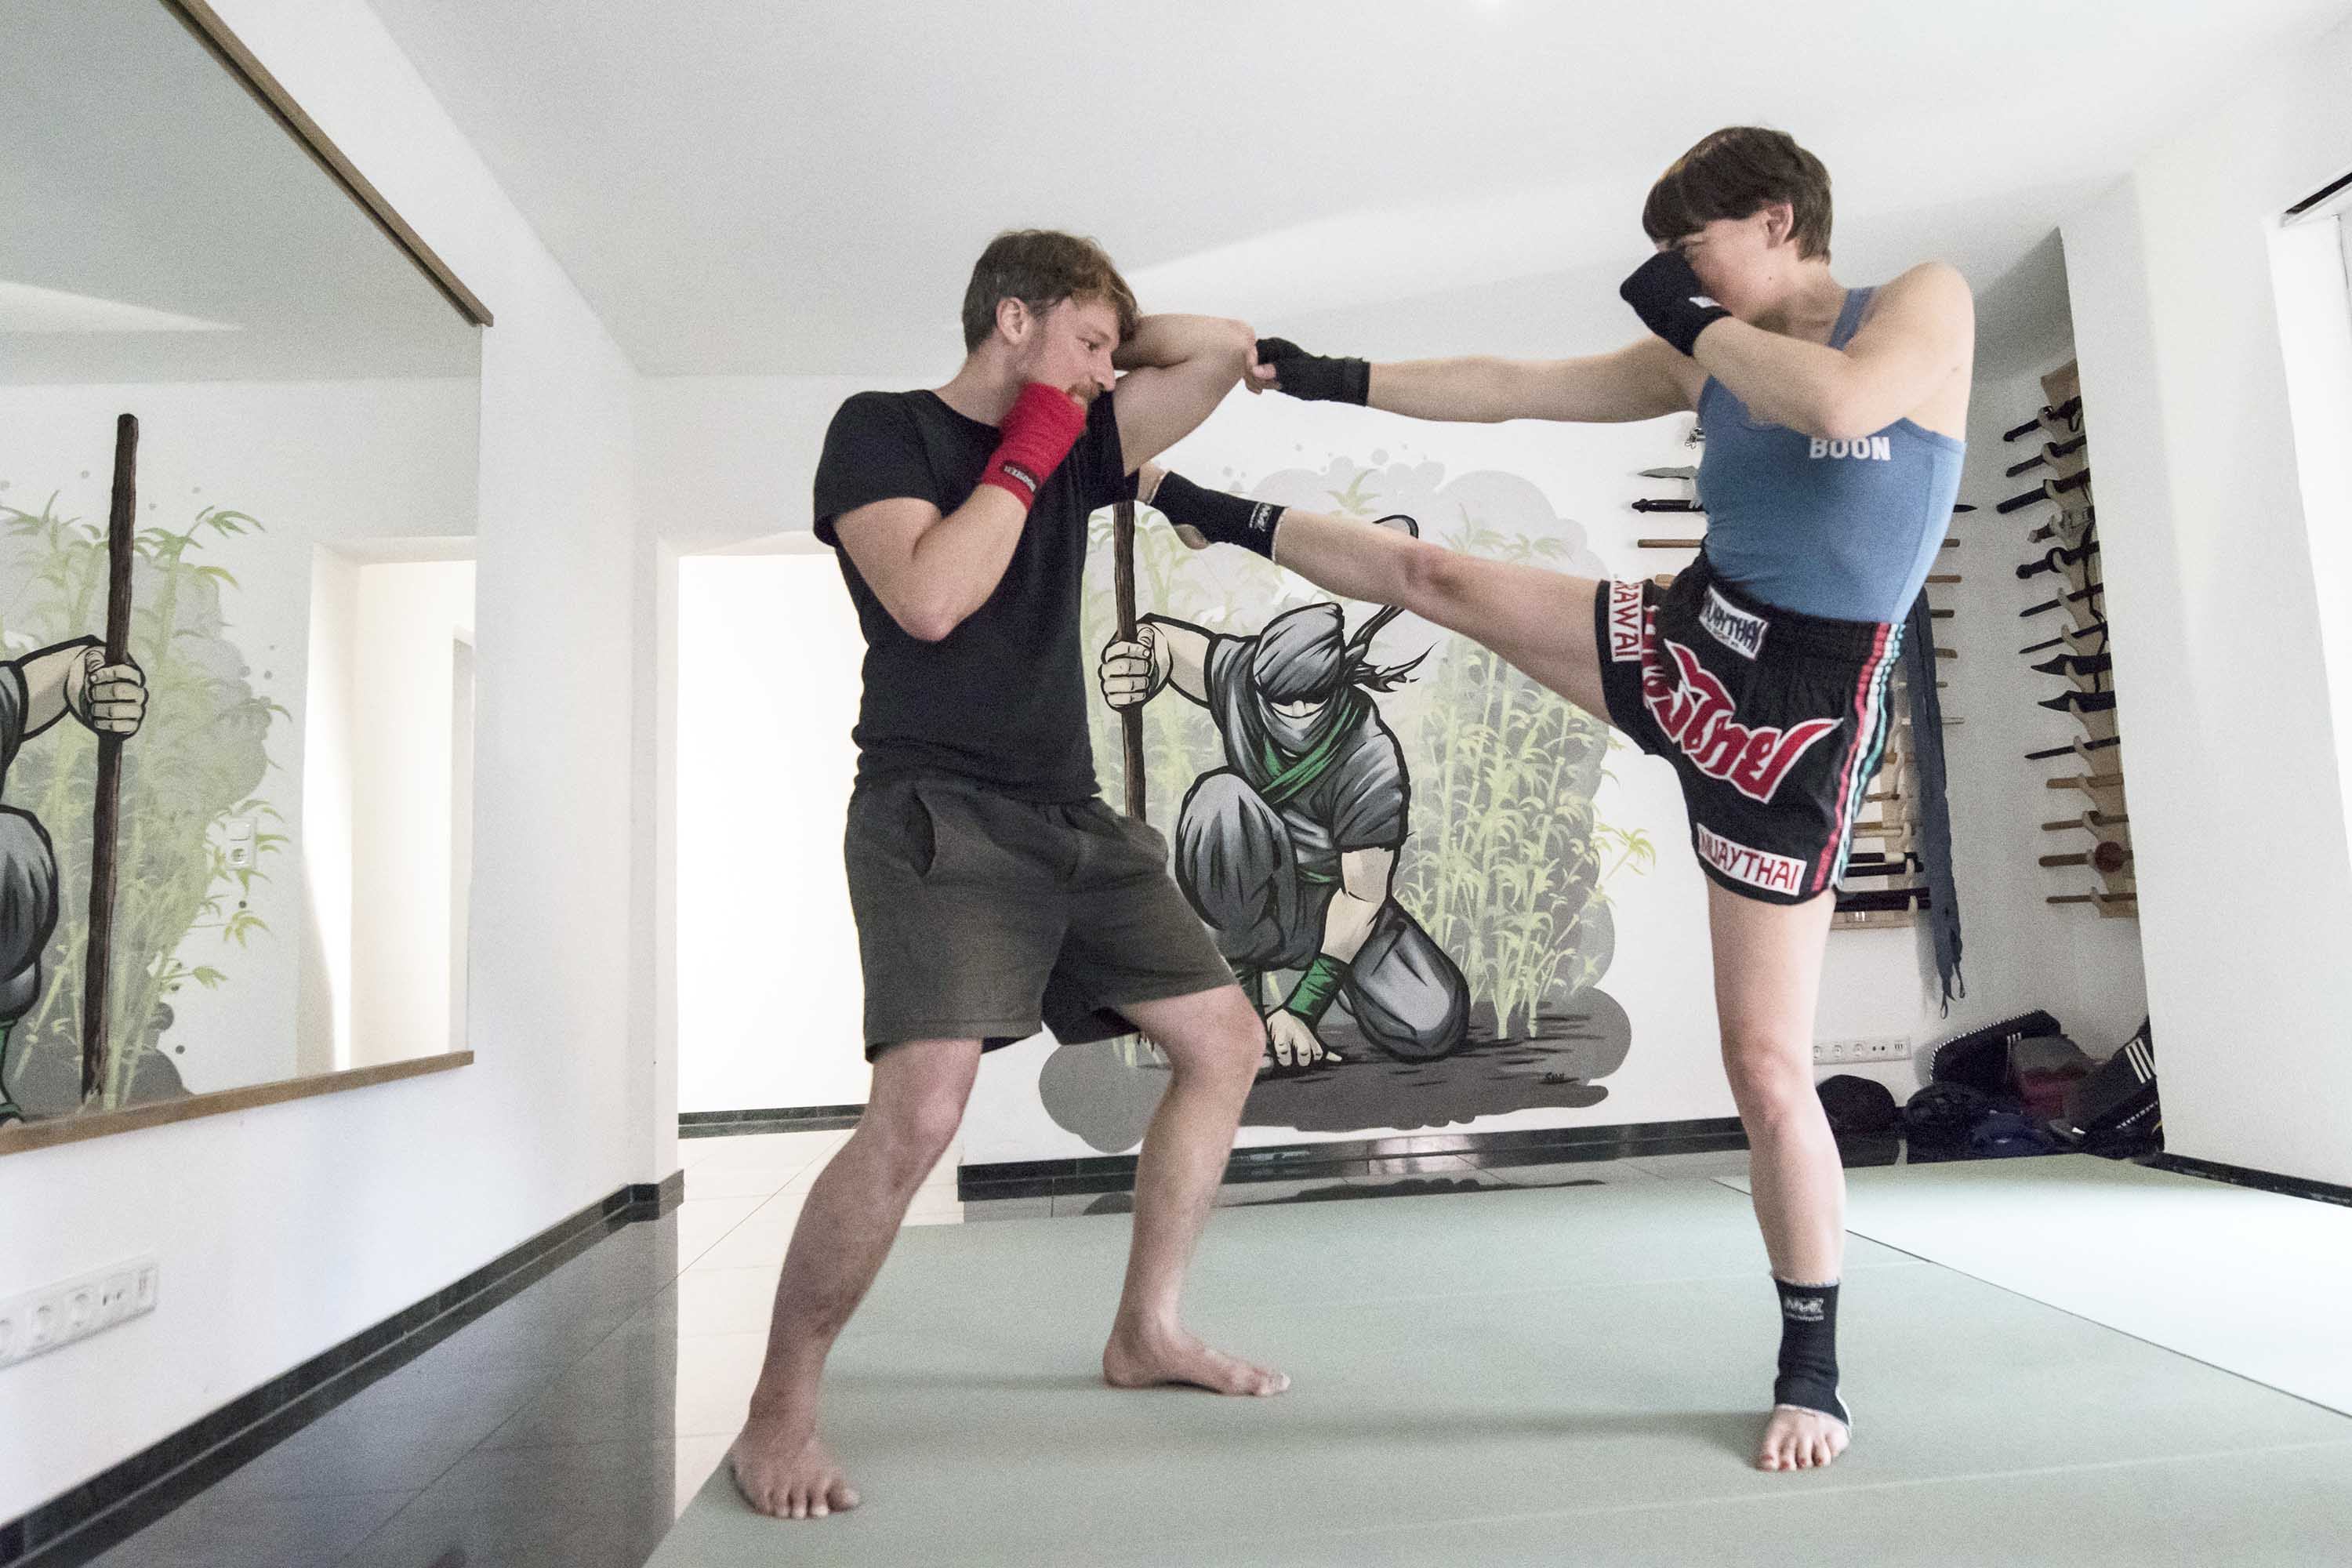 RONIN_DOJO_Traditionelles_thaiboxen_Training_09